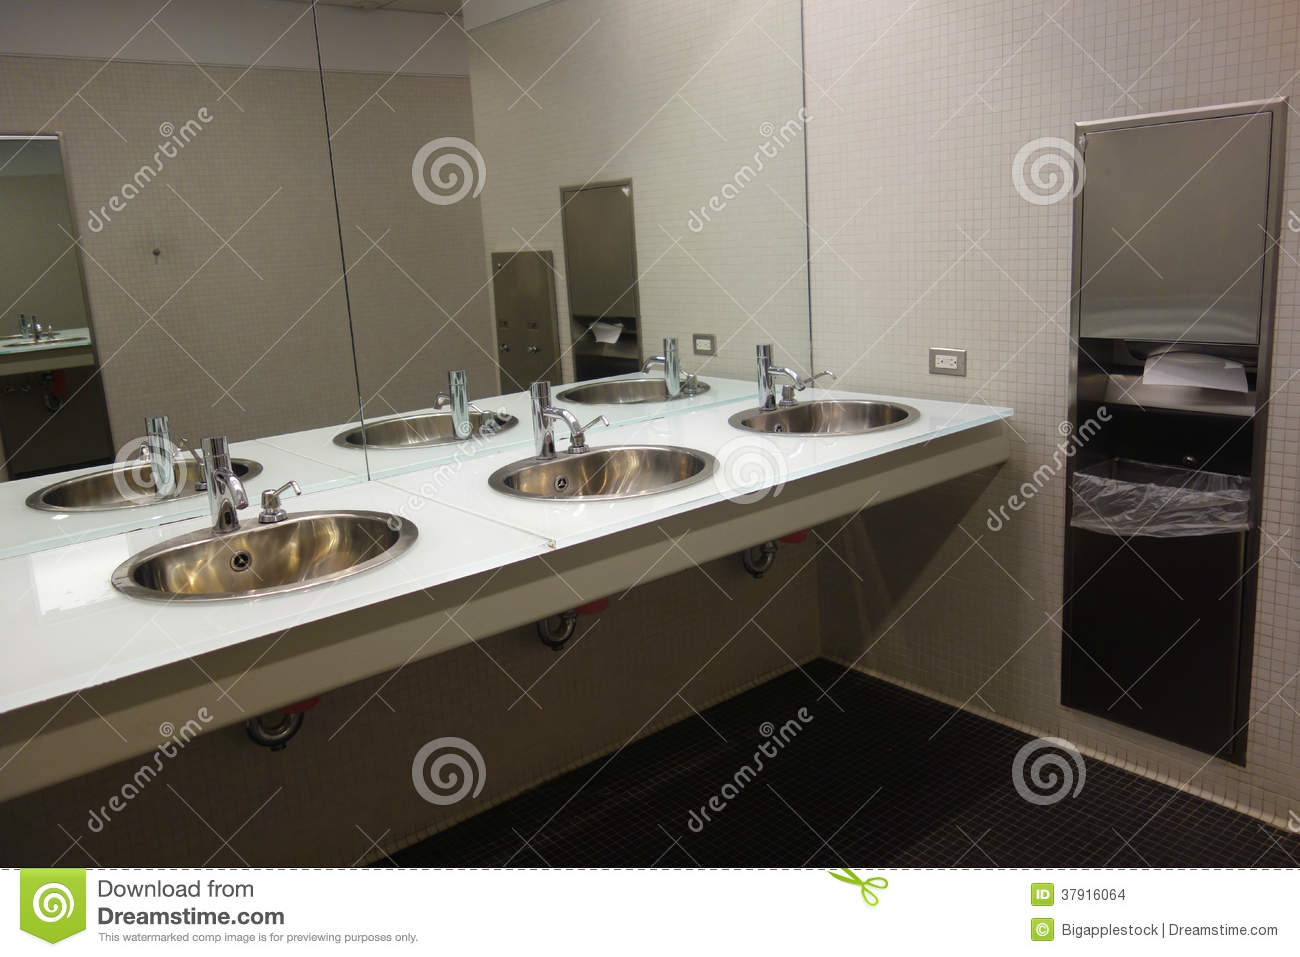 Public Bathroom Sink modern public restroom stock images - image: 37916064